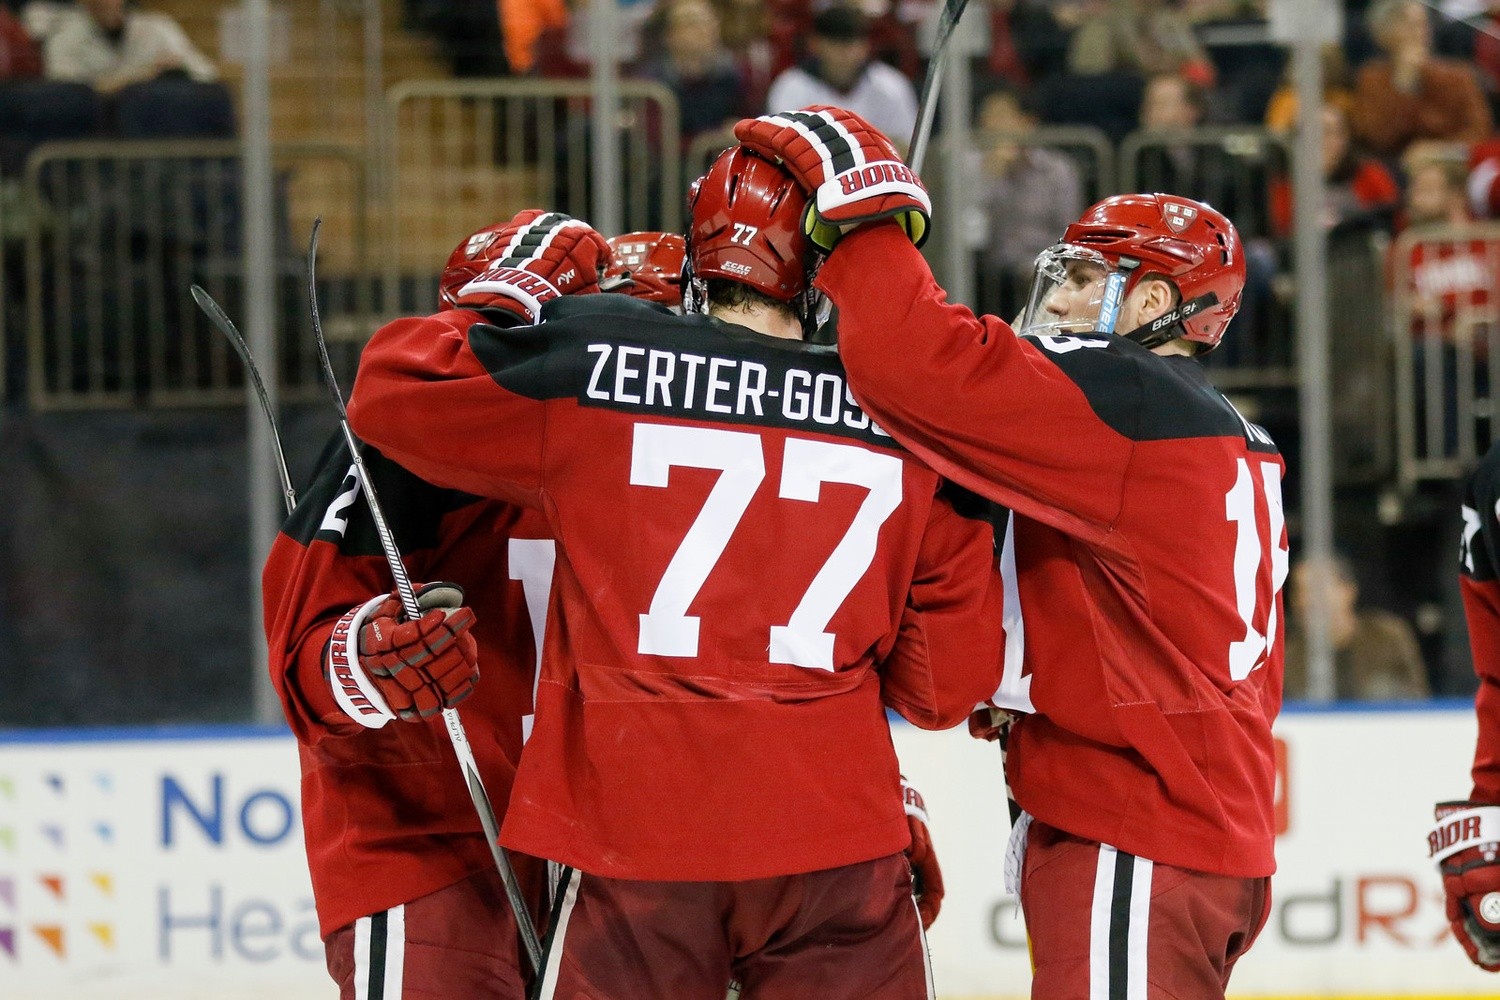 The Crimson powerplay, pictured here after scoring versus the Big Red at Madison Square Garden in November, leads the nation in execution rate (35.7%).